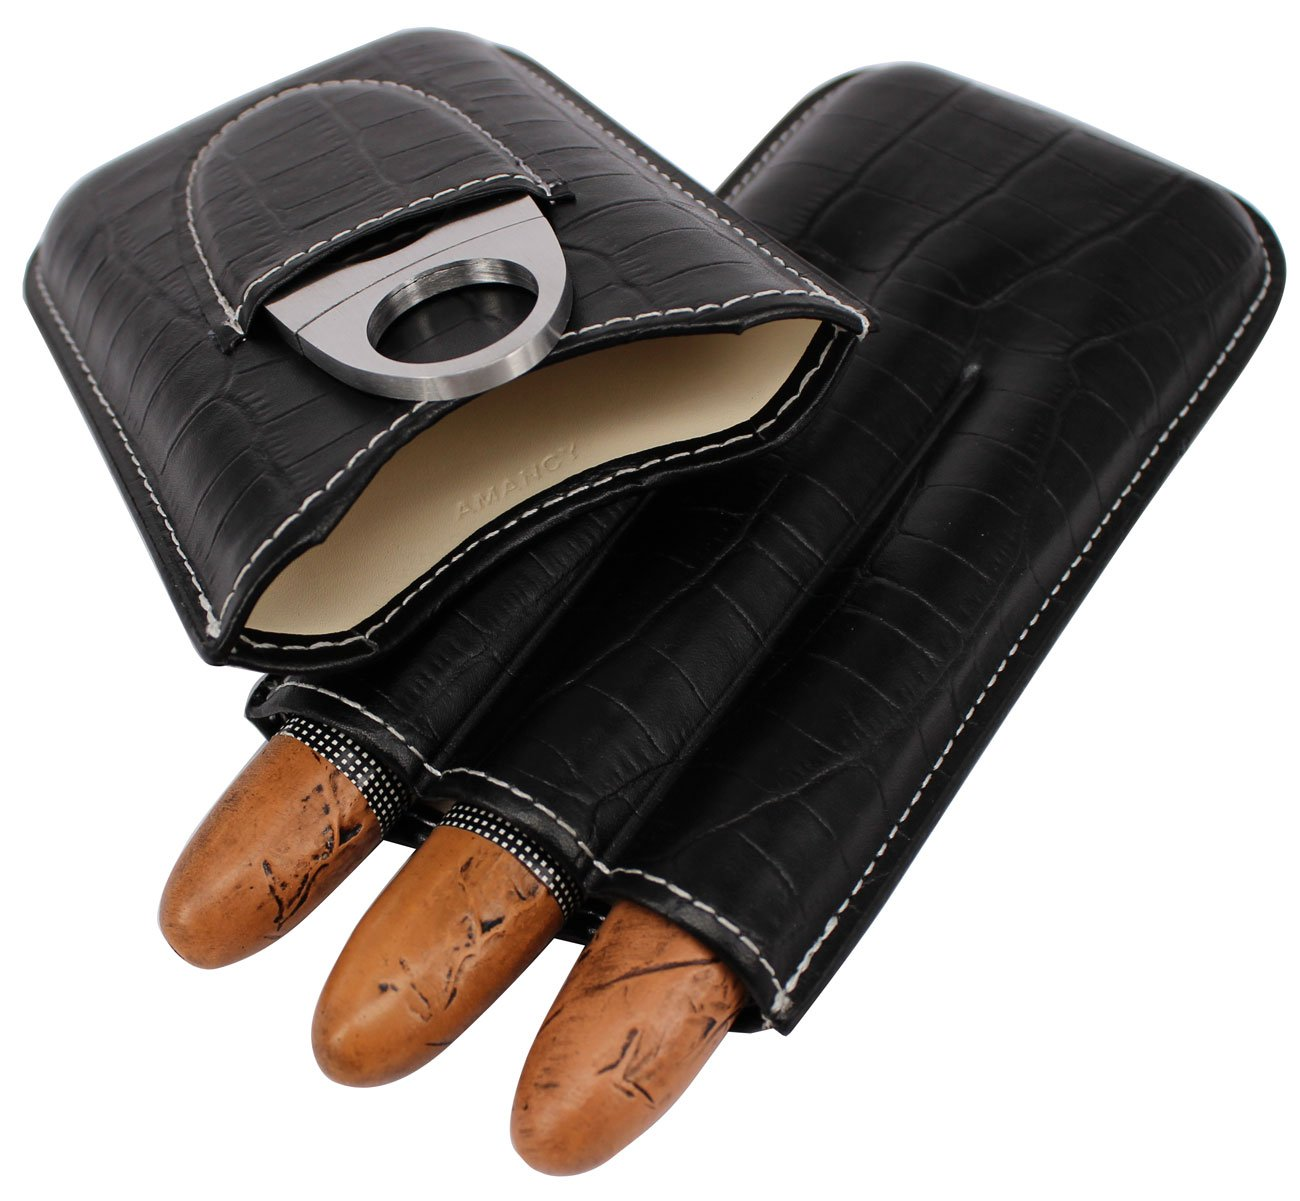 AMANCY Professional Black Crocodile Texture Leather 3 Holders Travel Cigar Case with Cutter Set